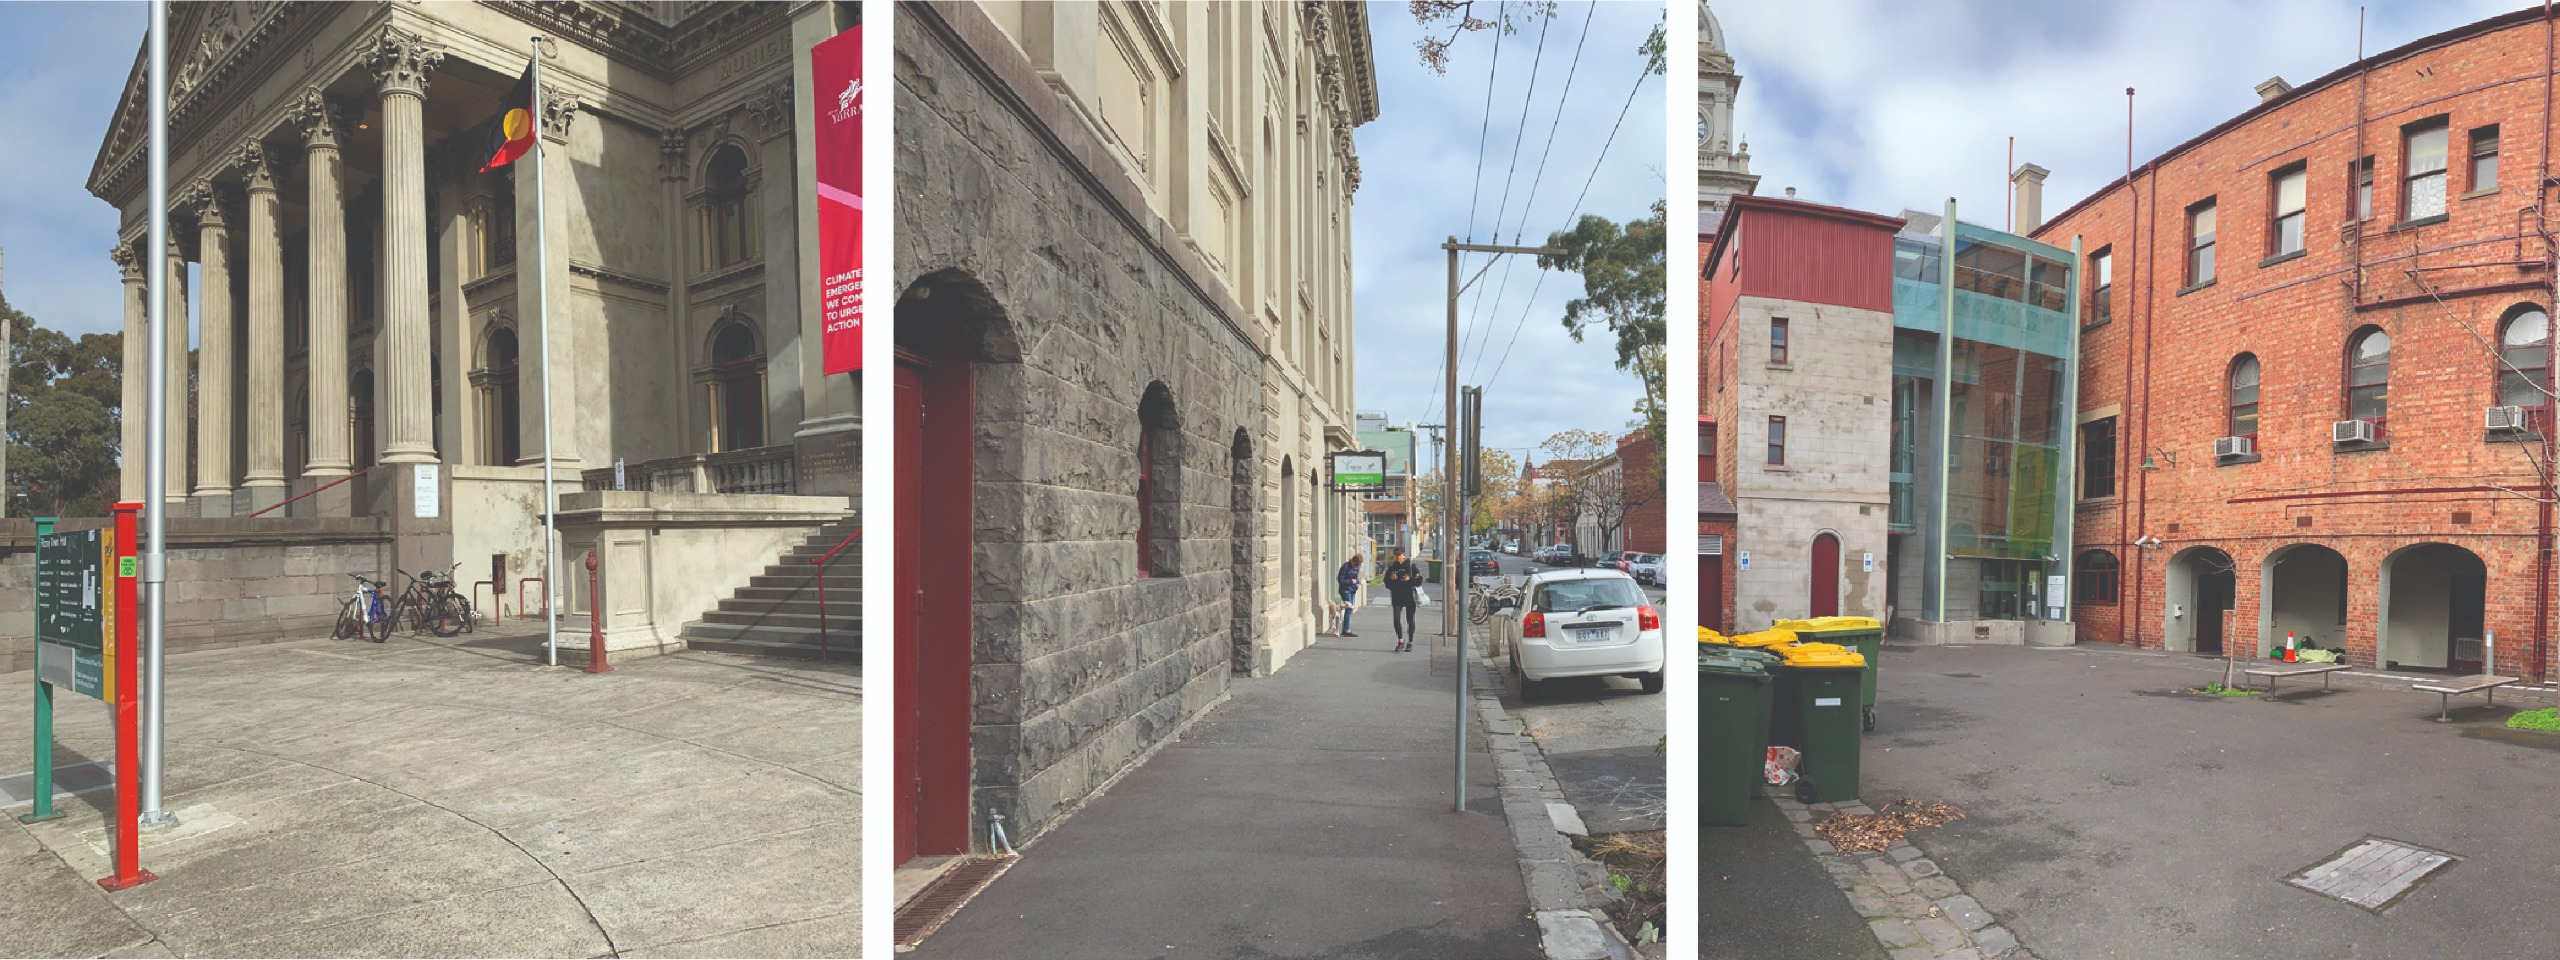 Three separate photos: one showing a concrete area outside Fitzroy Town Hall, one showing an asphalt footpath outside the Fitzroy Library, and one showing a narrow road with police cars and a police station